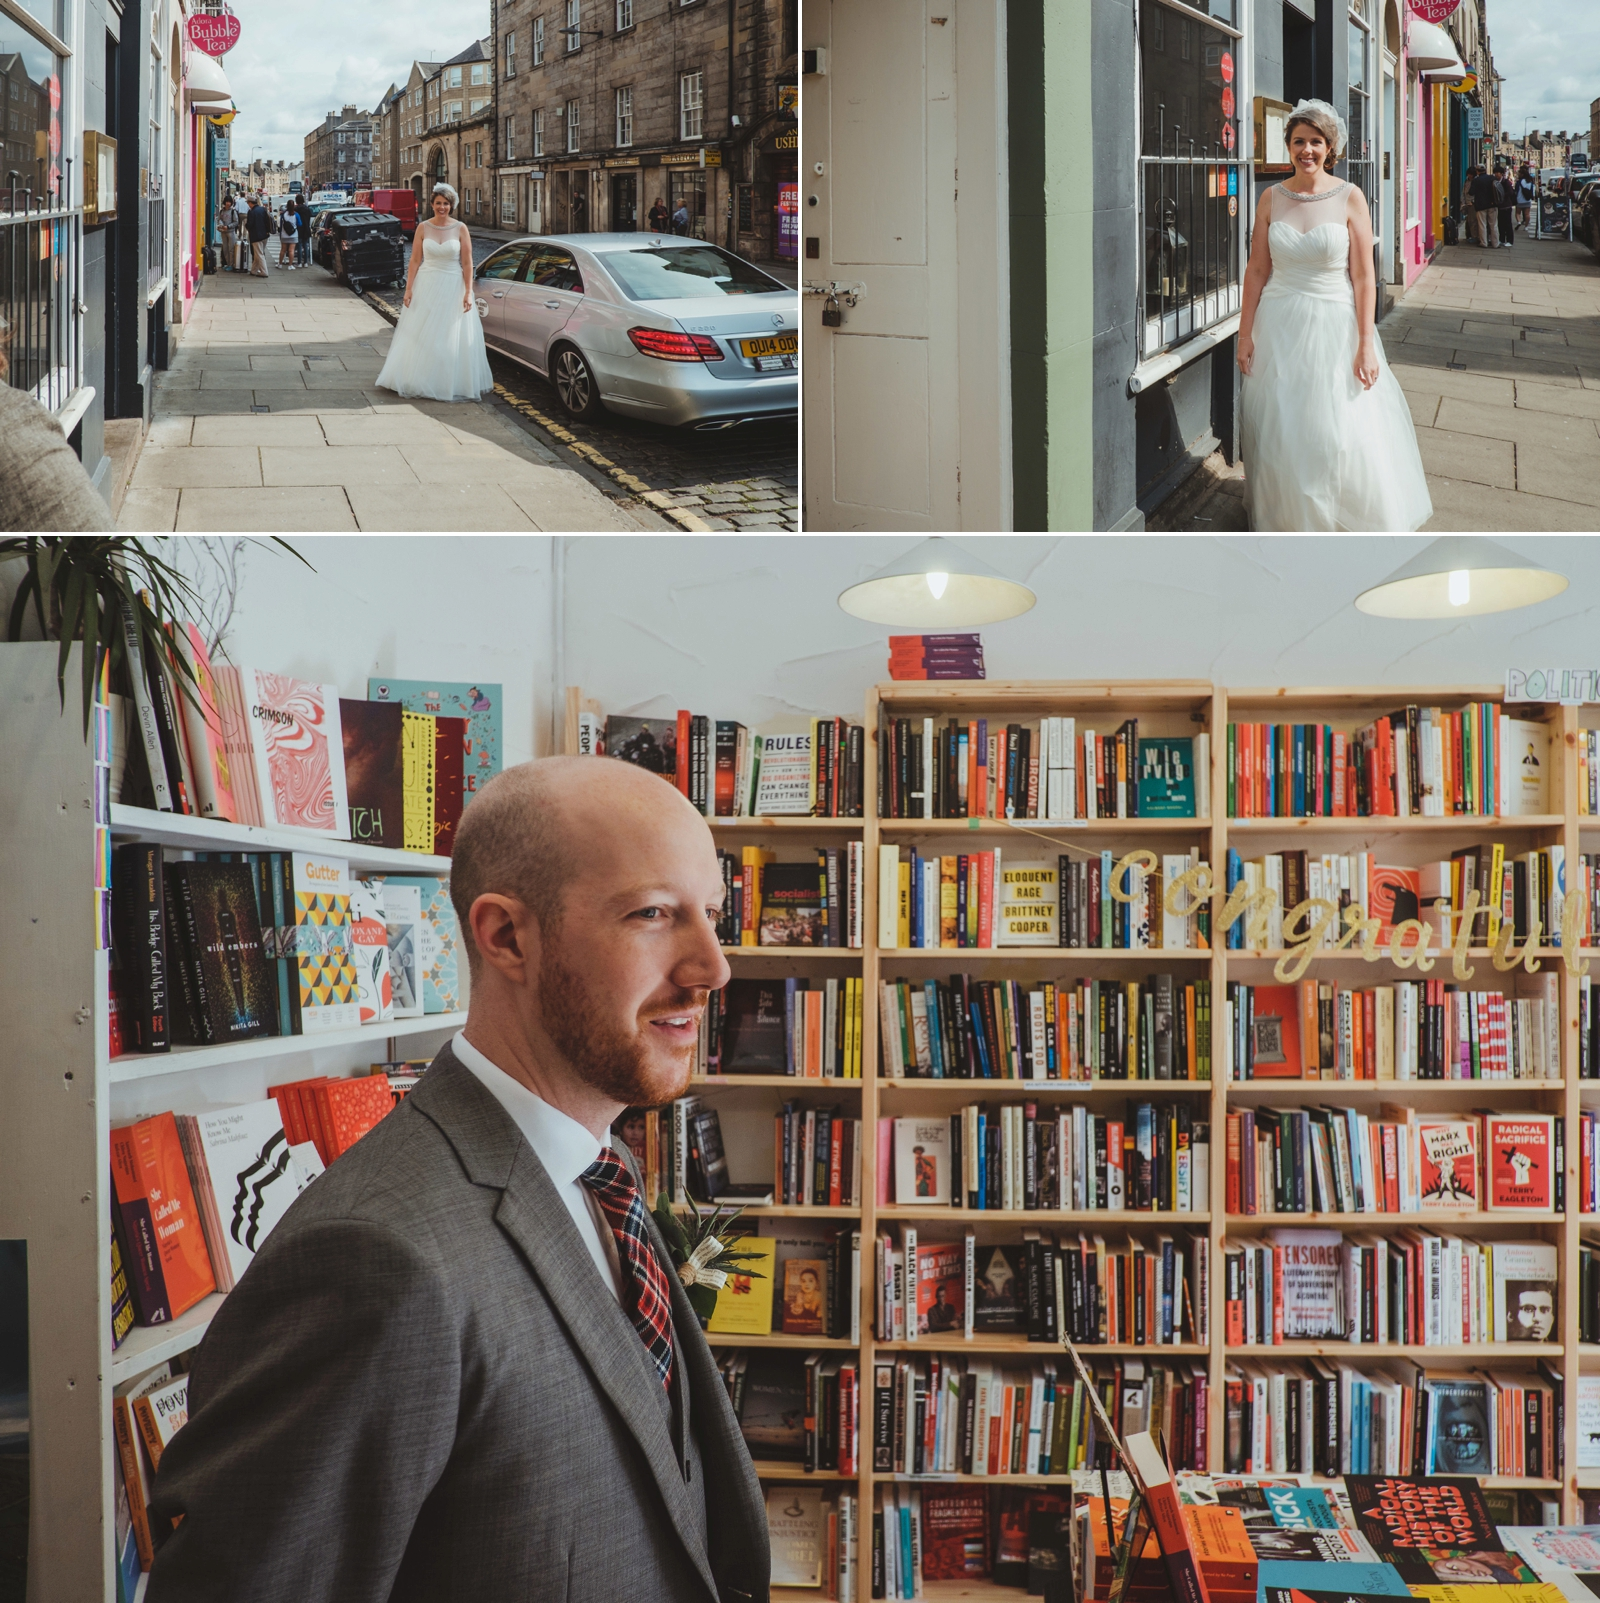 Angela___Andy_s_Edinburgh_elopement_by_Barry_Forshaw_0102.jpg